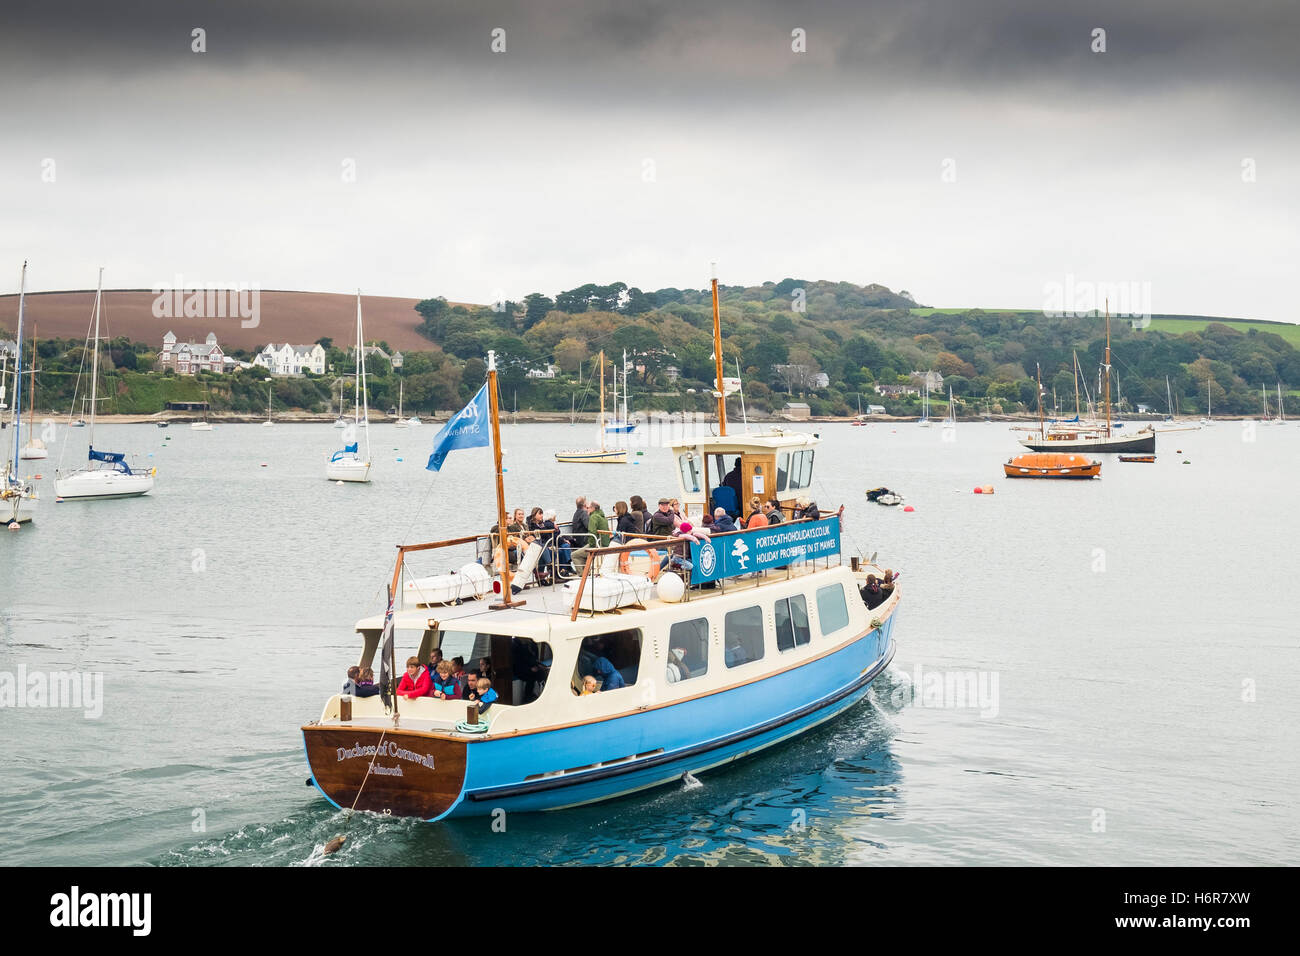 The St Mawes Ferry carries passengers across the Carrick Roads from Falmouth, Cornwall. - Stock Image